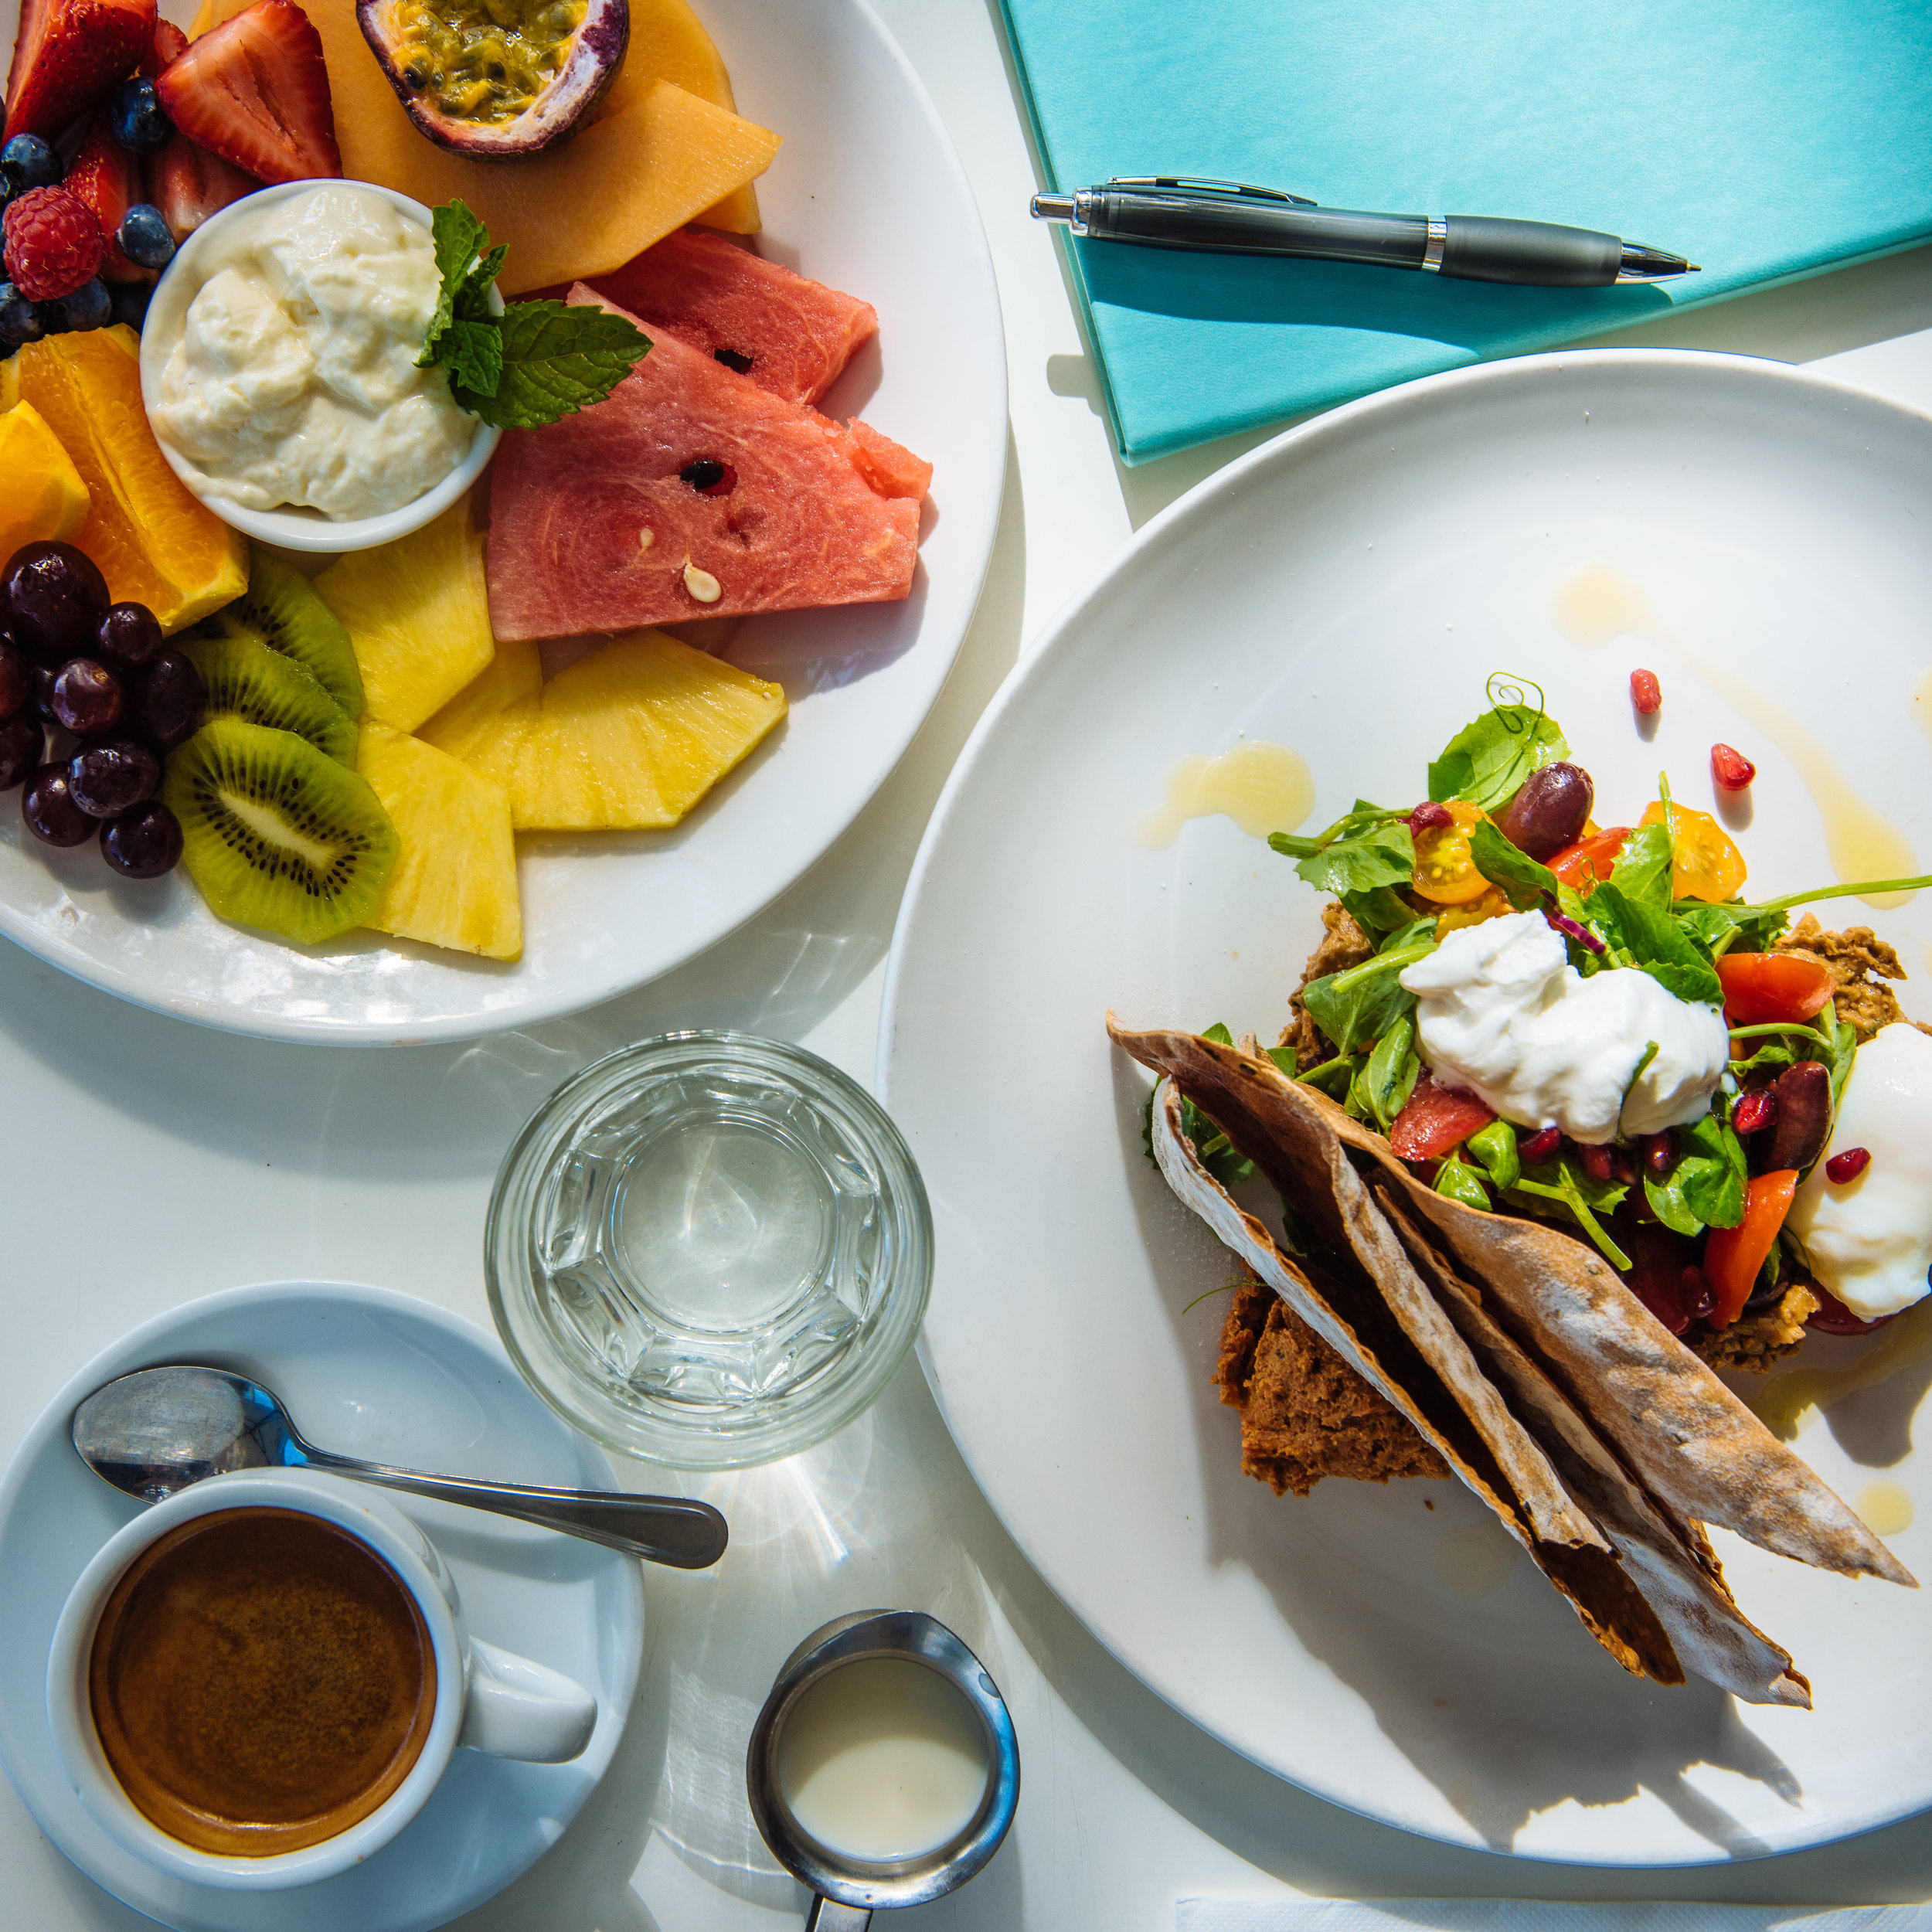 On the right Bistro C's 'Yaddah's Breakfast' with walnut & pomegranate hummus, olives, goats curd, muhammara, heritage tomatoes etc, etc. On the left, a delicious plate of seasonal fruits with honey-yogurt topped off with a long black and a dash of milk on the side. Just how I like it.